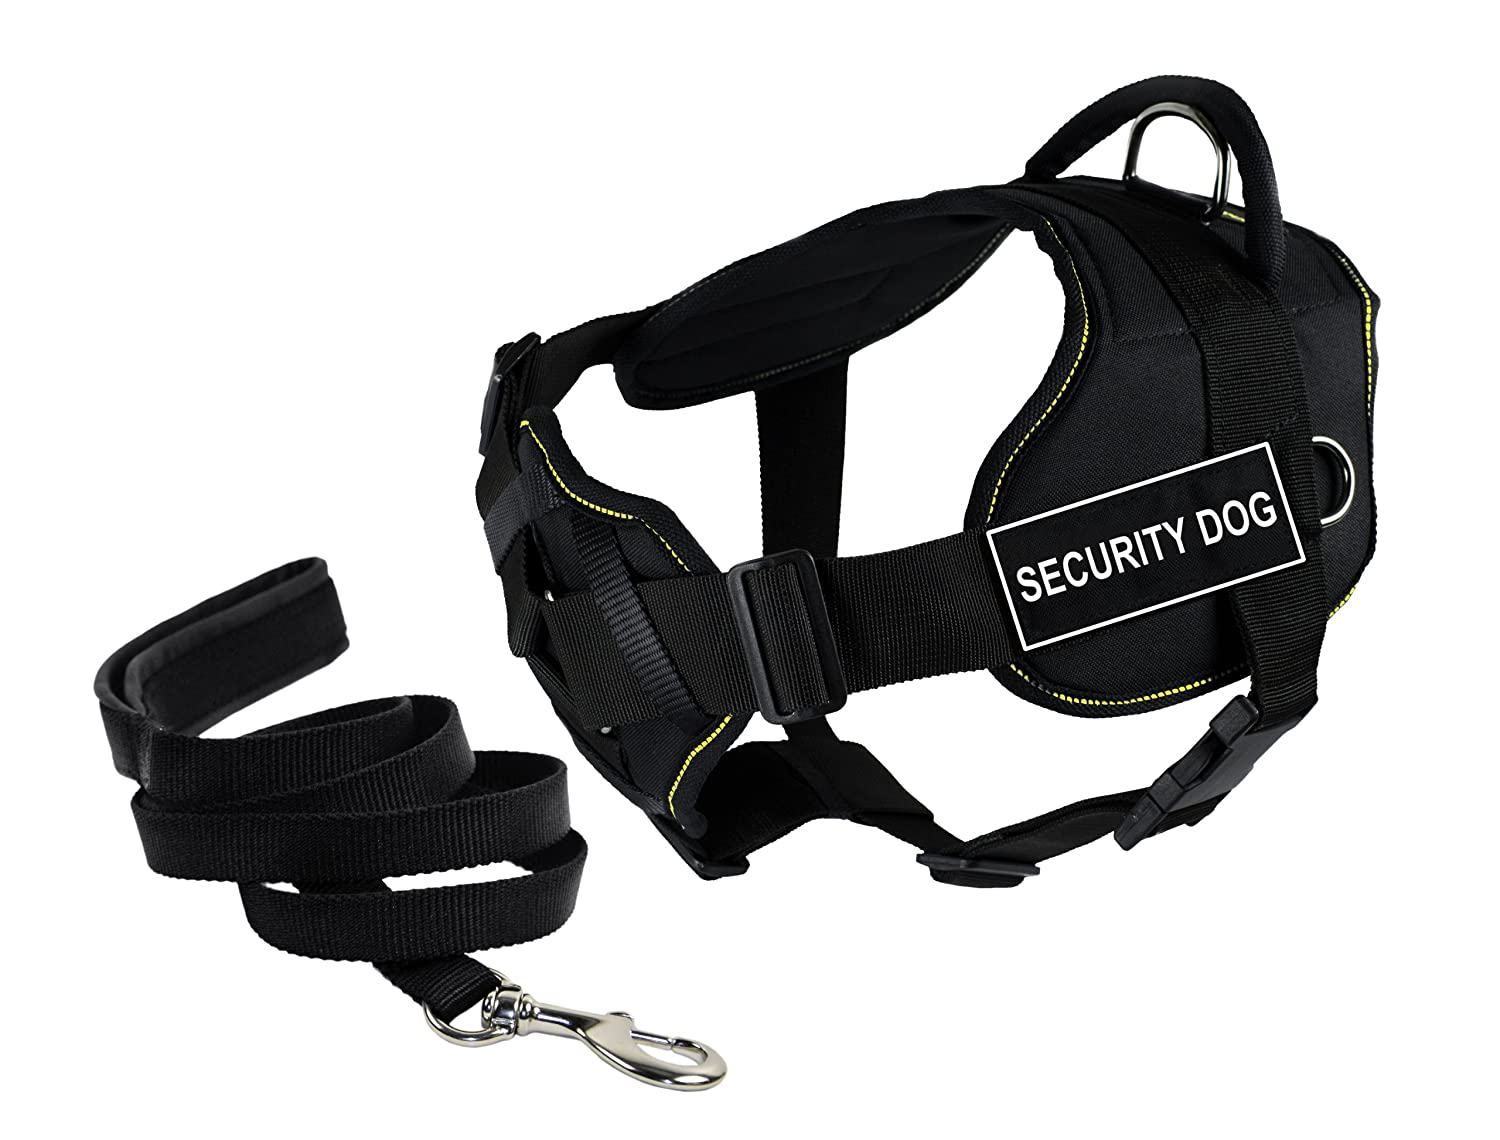 Dean & Tyler's DT Fun Chest Support SECURITY DOG Harness, Large, with 6 ft Padded Puppy Leash.